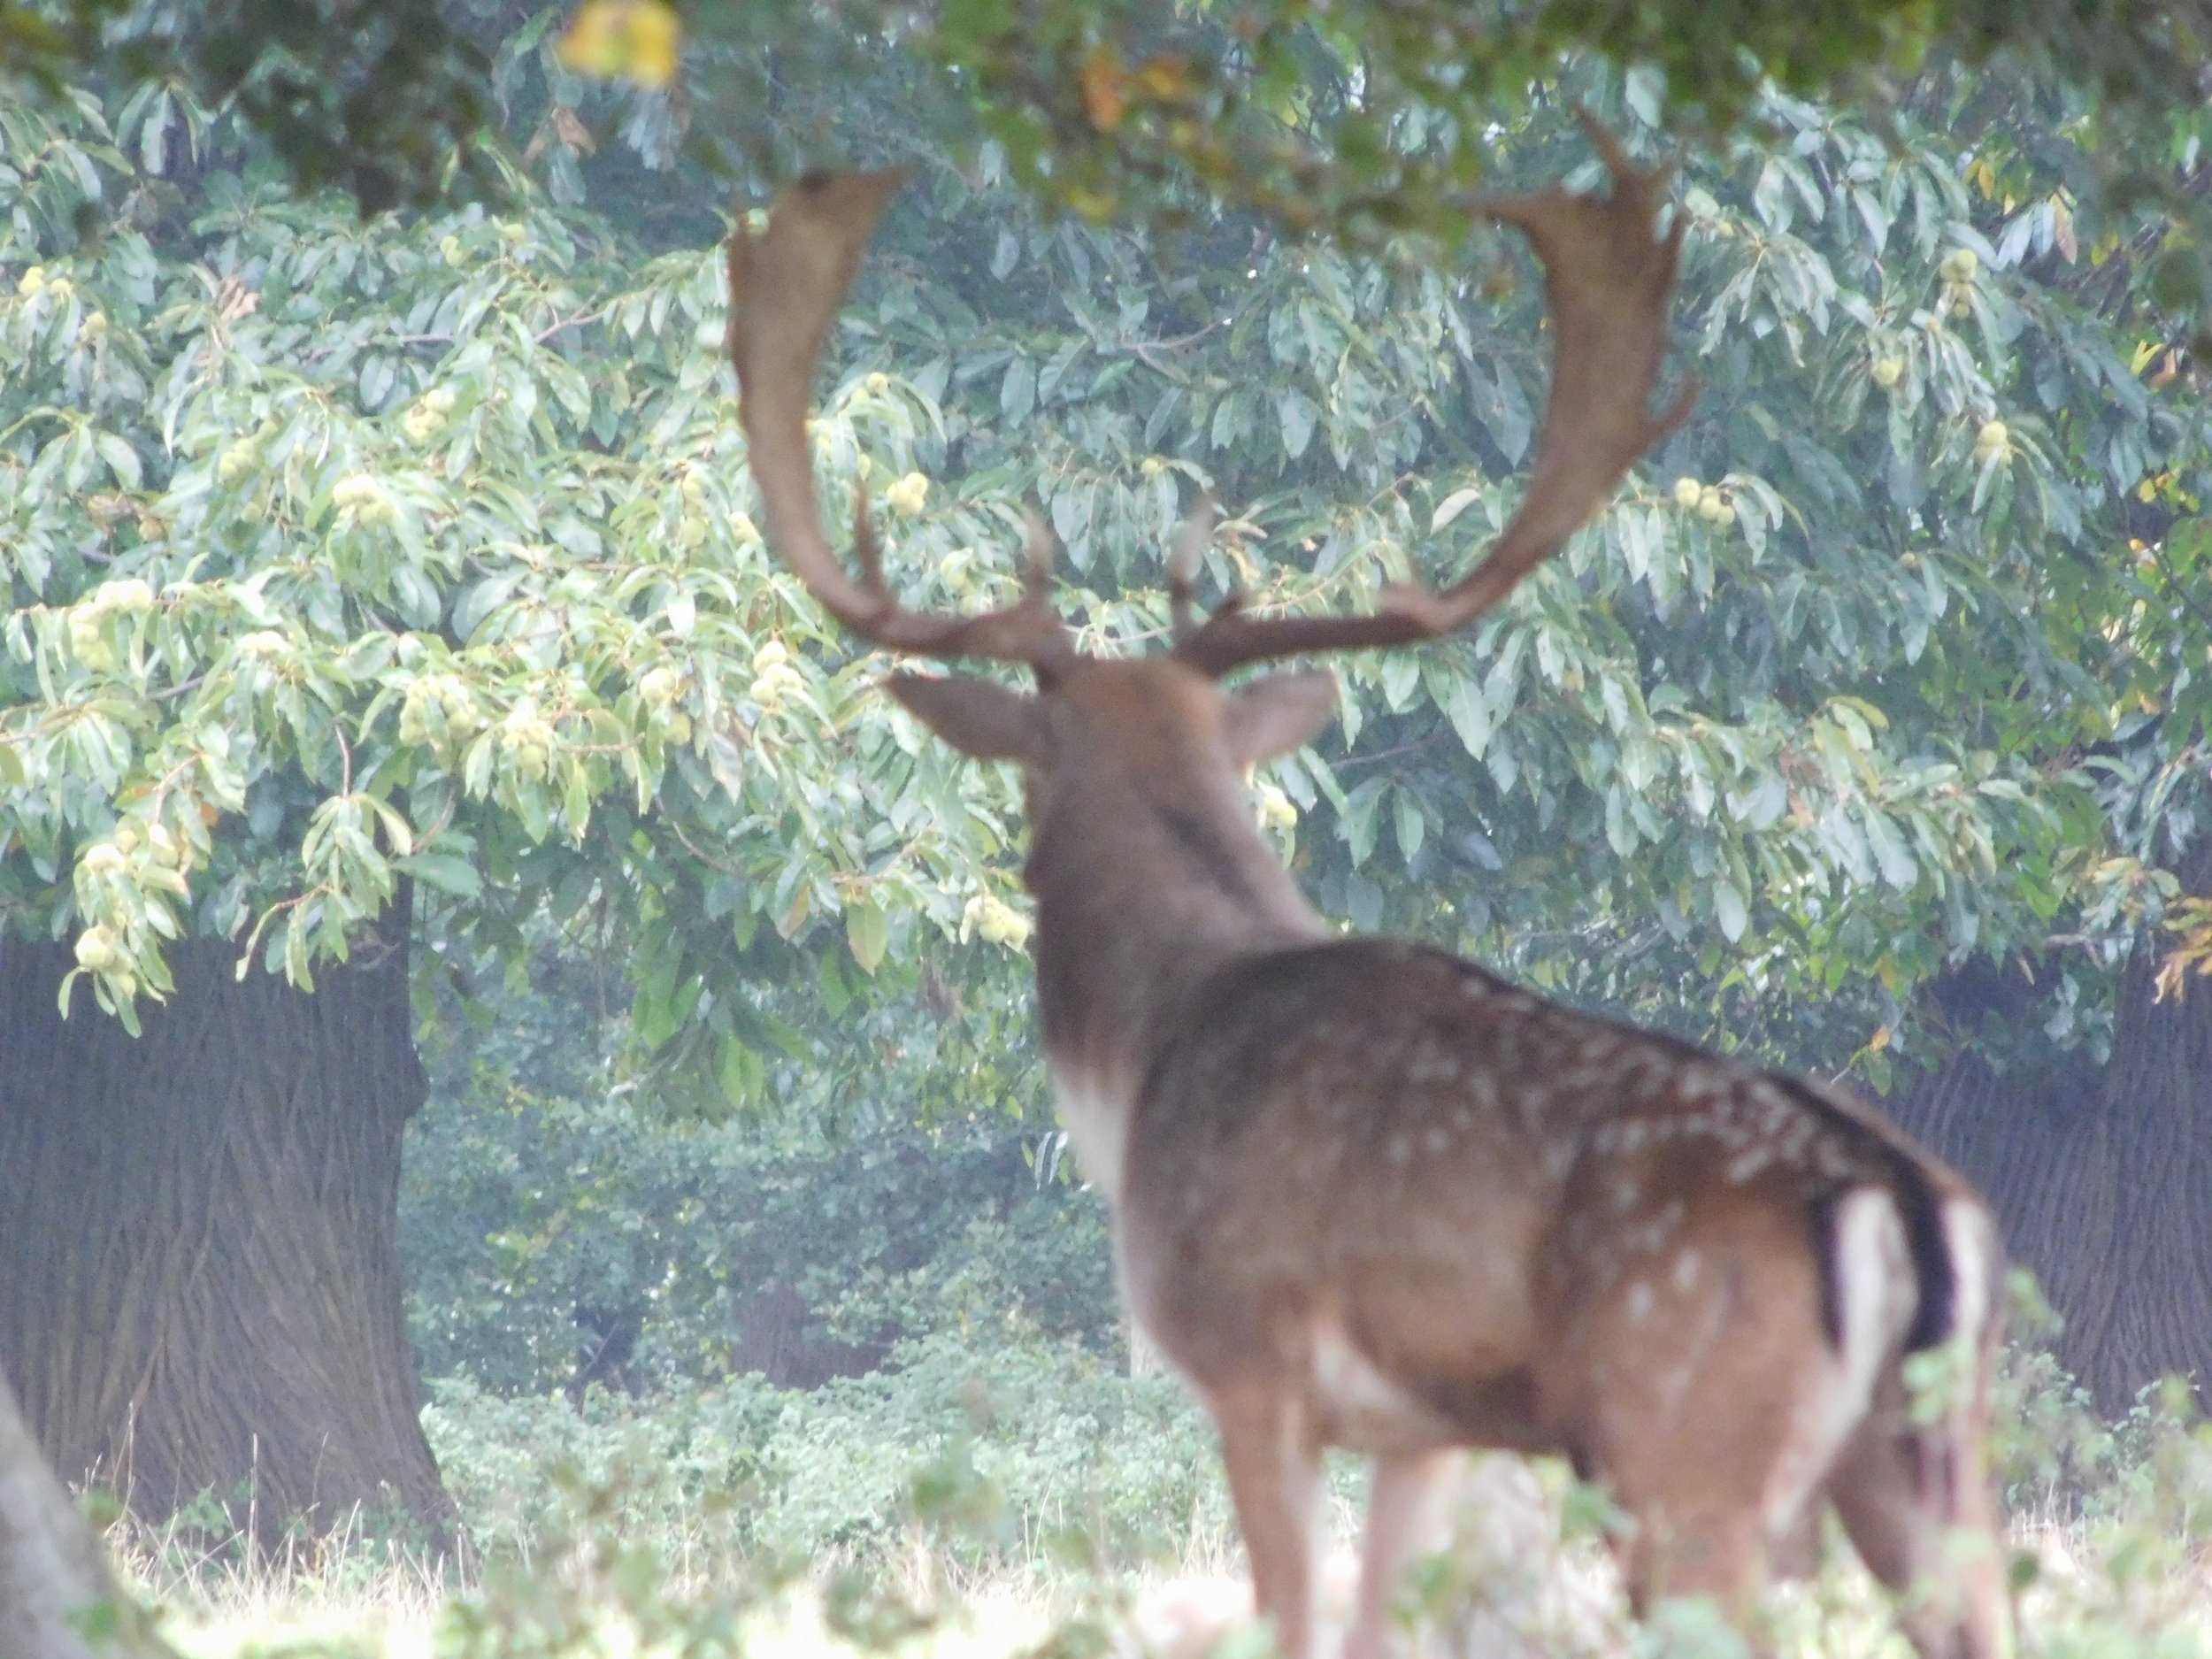 A fallow deer stag contemplates life